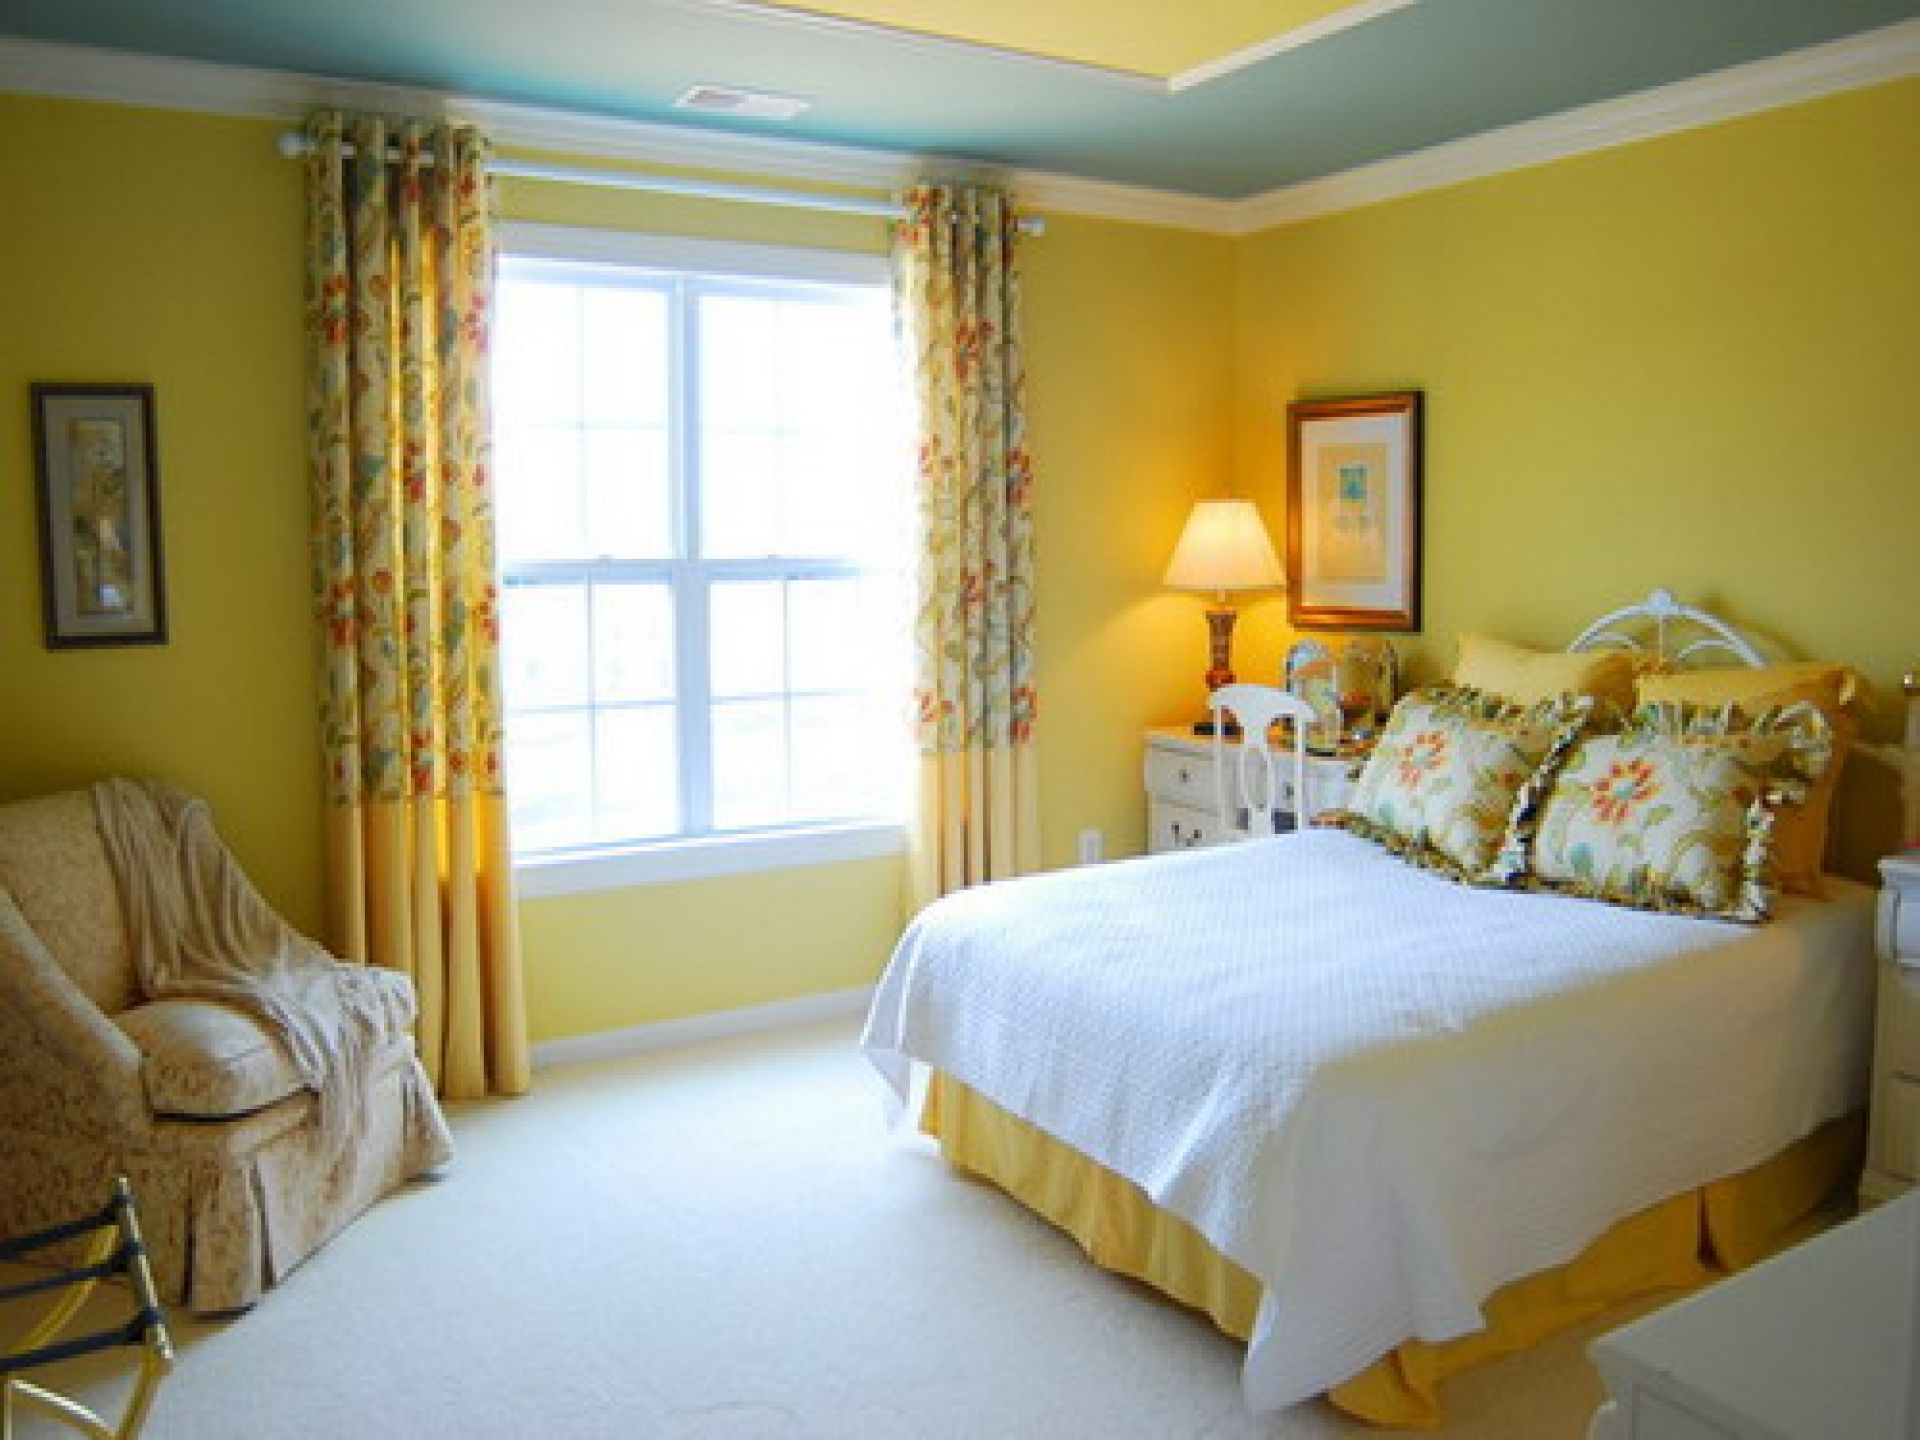 What Color Furniture Goes With Yellow Walls What Color Furniture Goes Well With Yellow Walls  Google Search